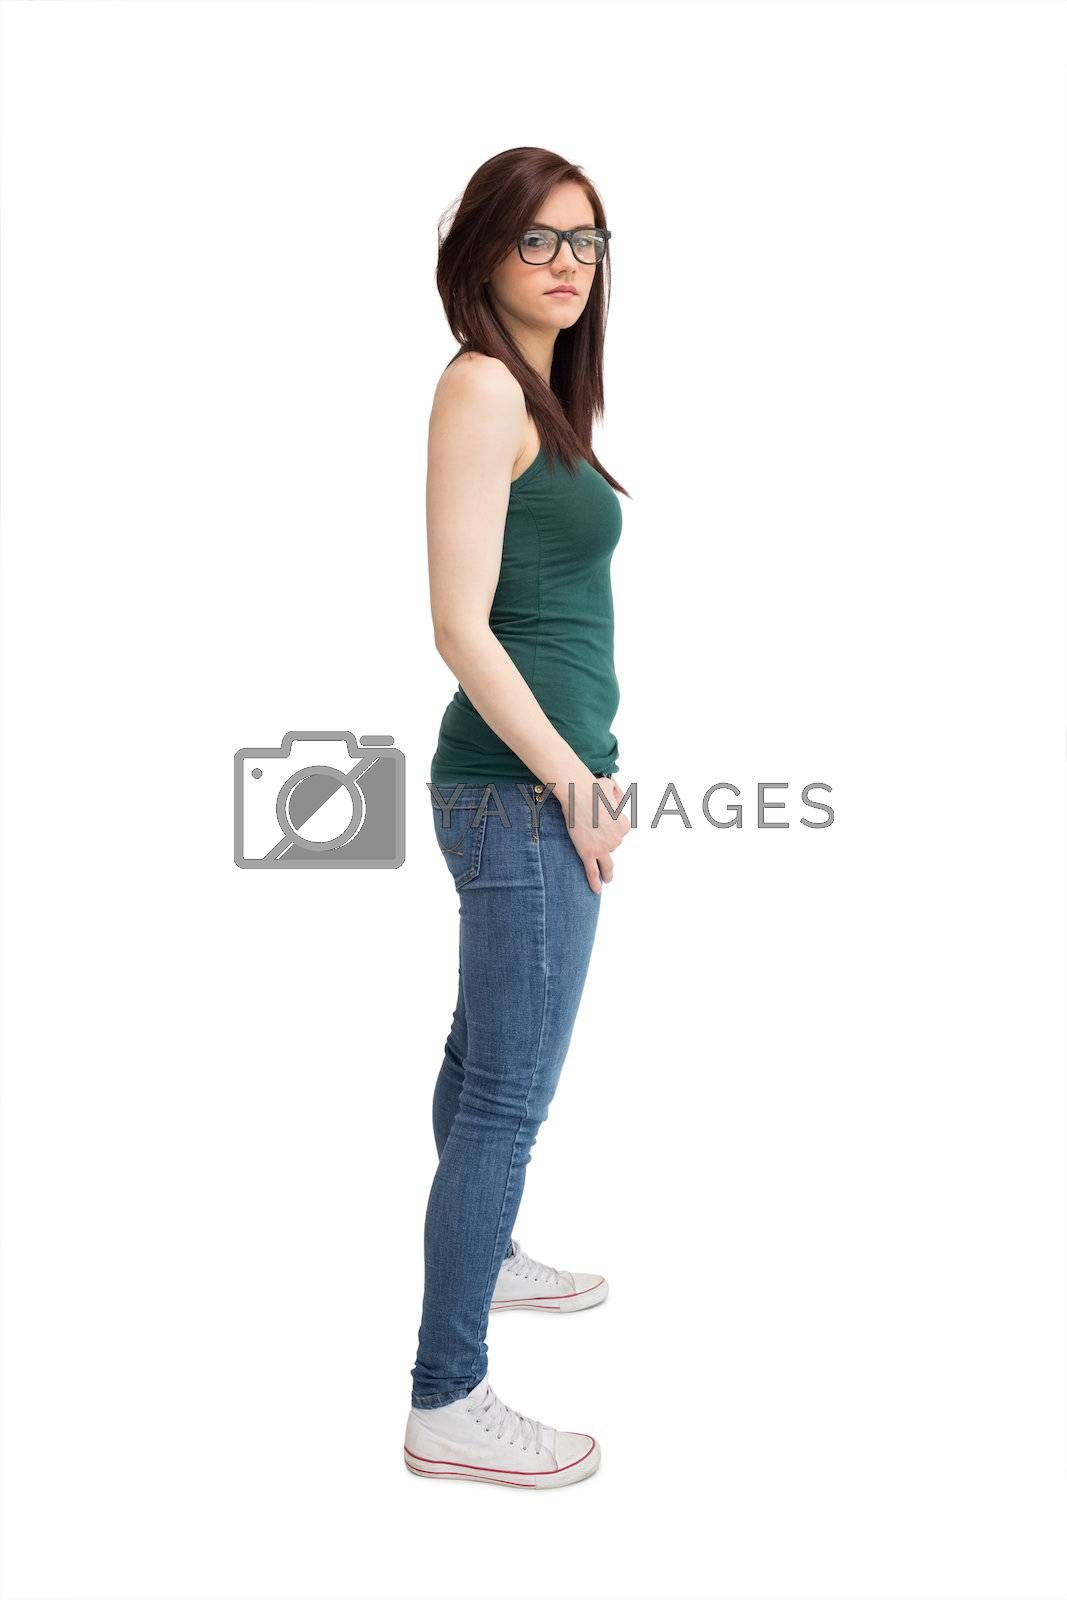 Unsmiling young woman with glasses posing by Wavebreakmedia